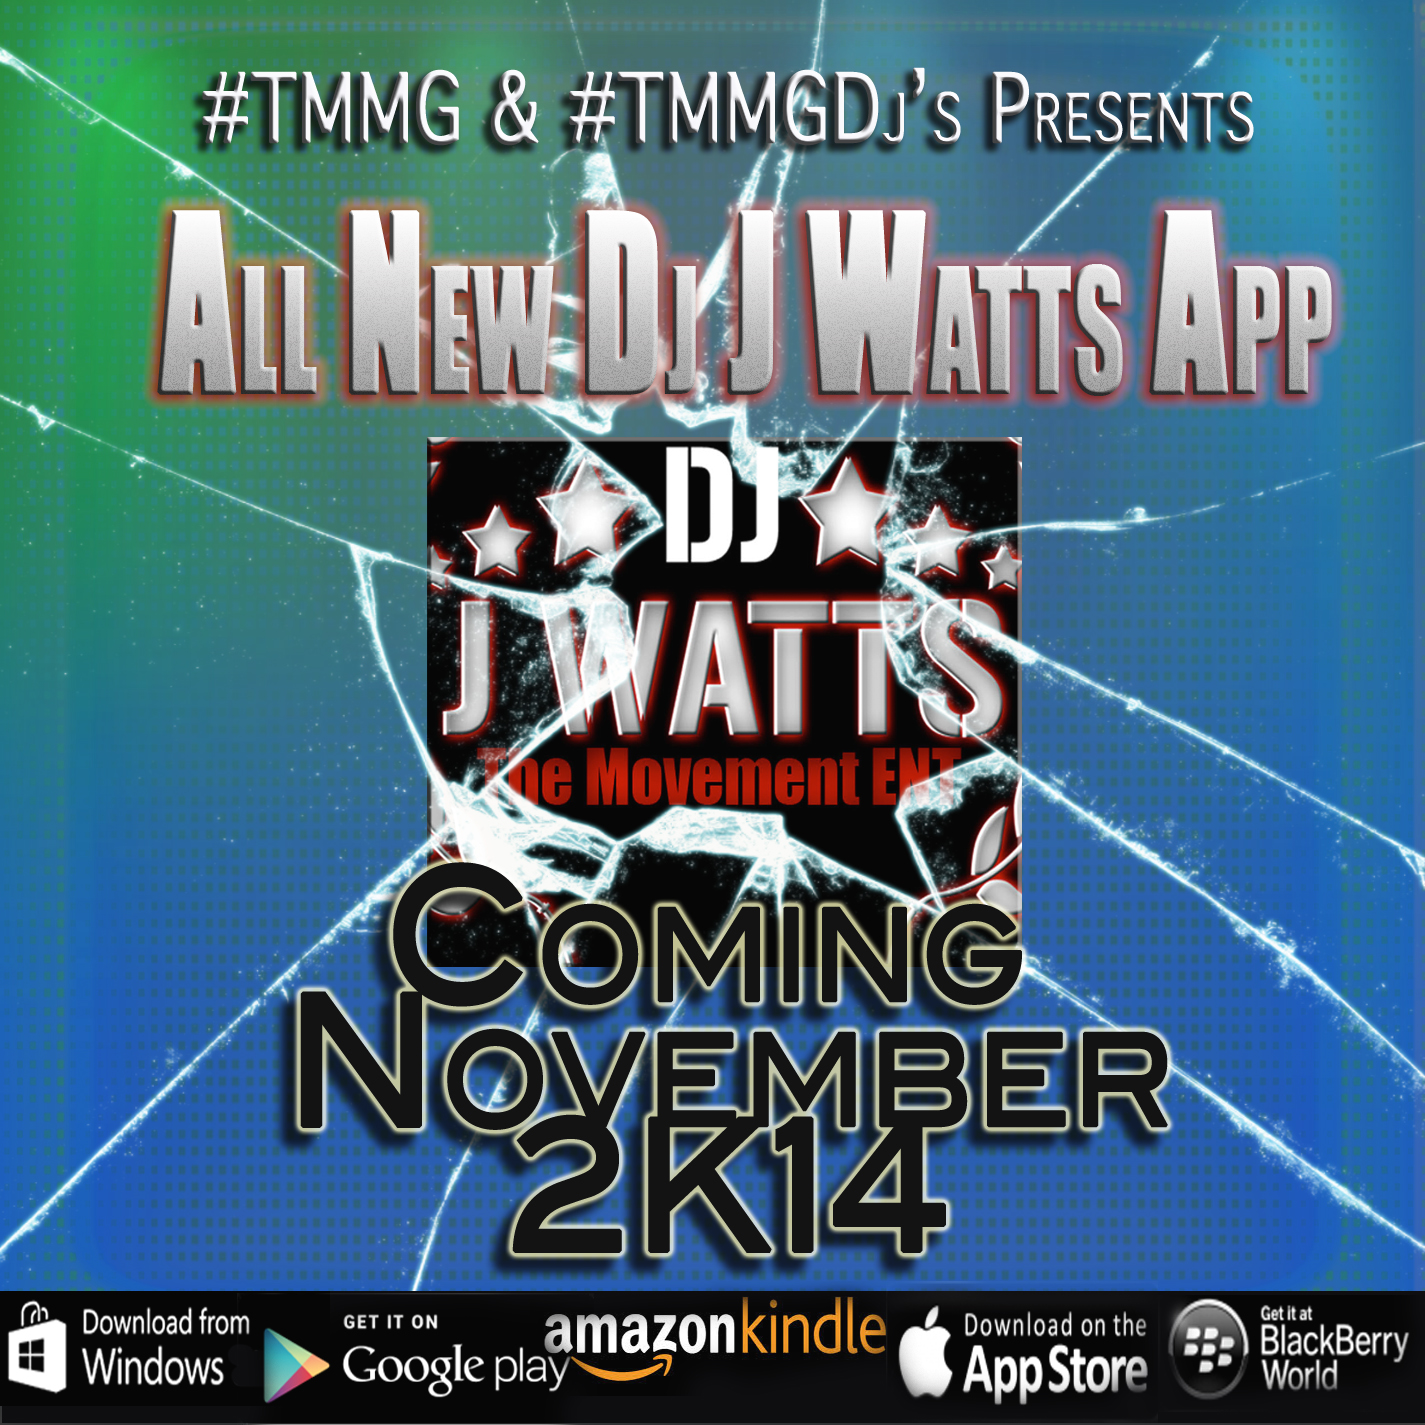 Friday Dj J Watts app